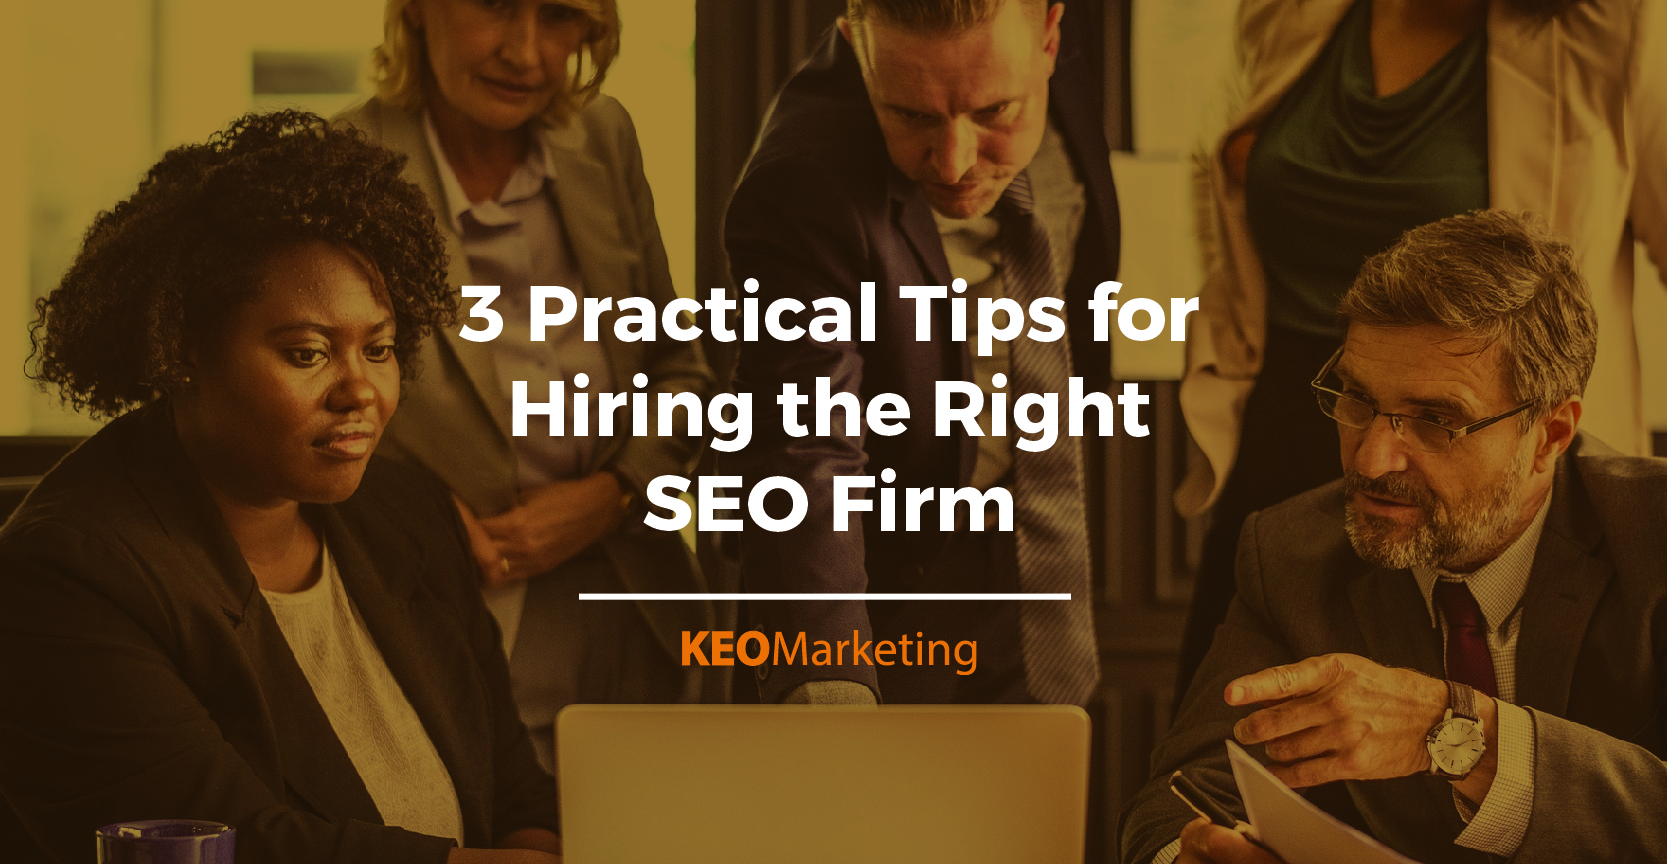 Hiring the Right SEO Firm